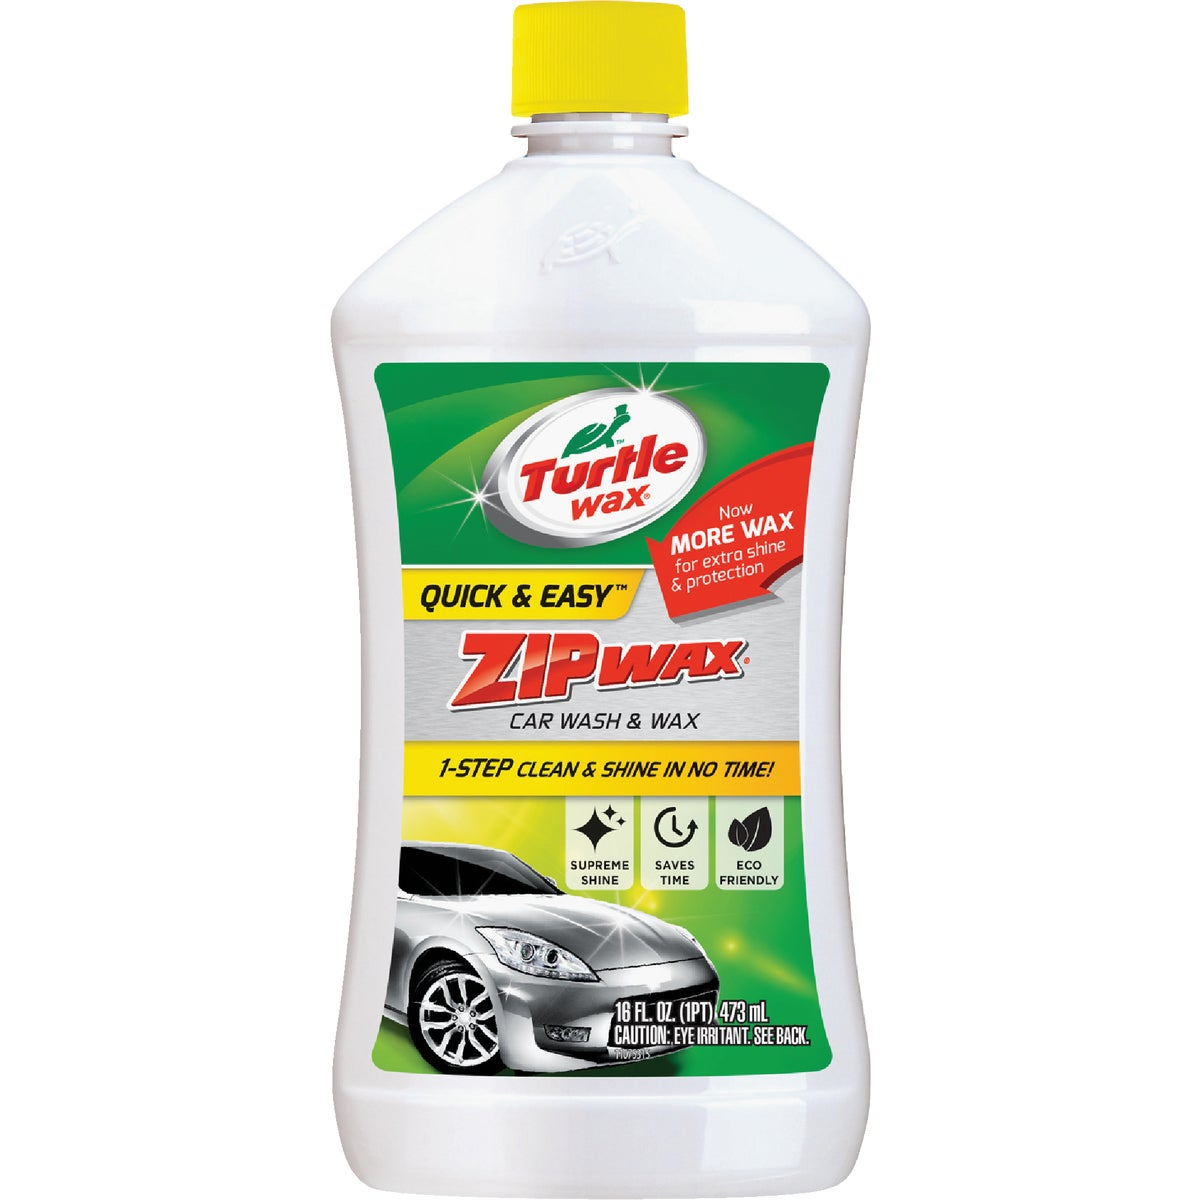 16OZ LIQUID CAR WASH - T75A by Turtle Wax Inc